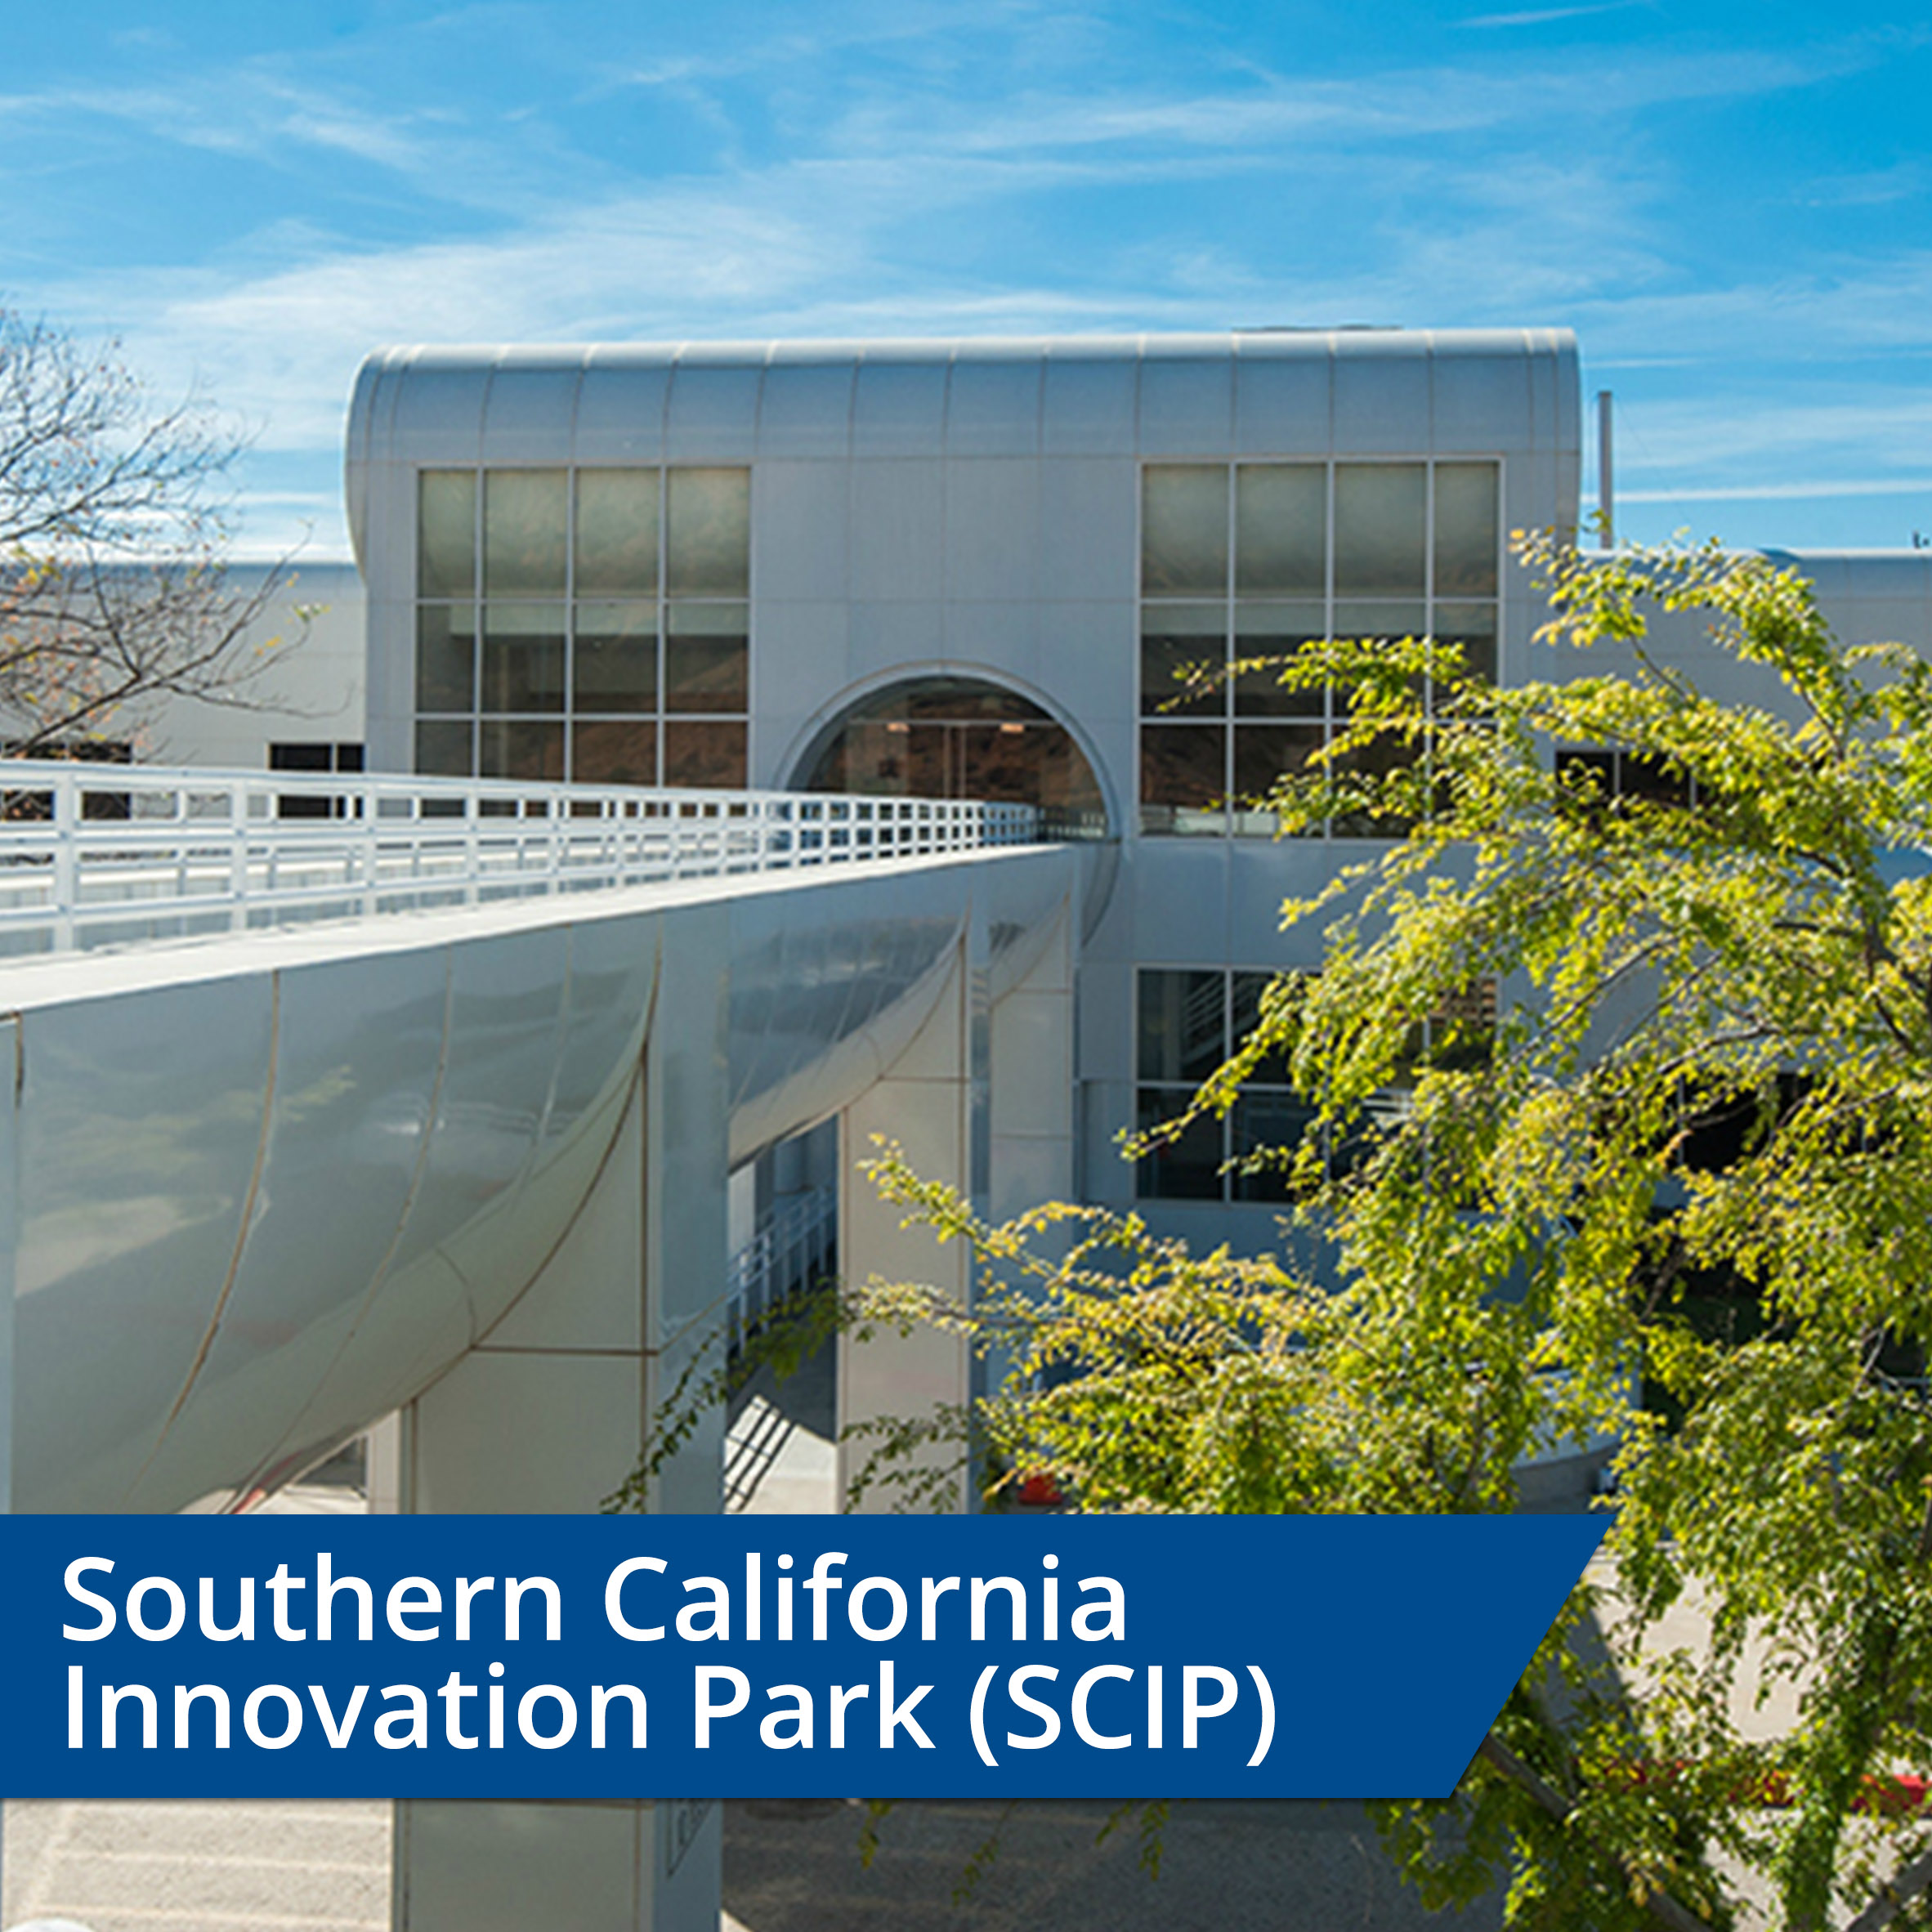 Southern California Innovation Park (SCIP)